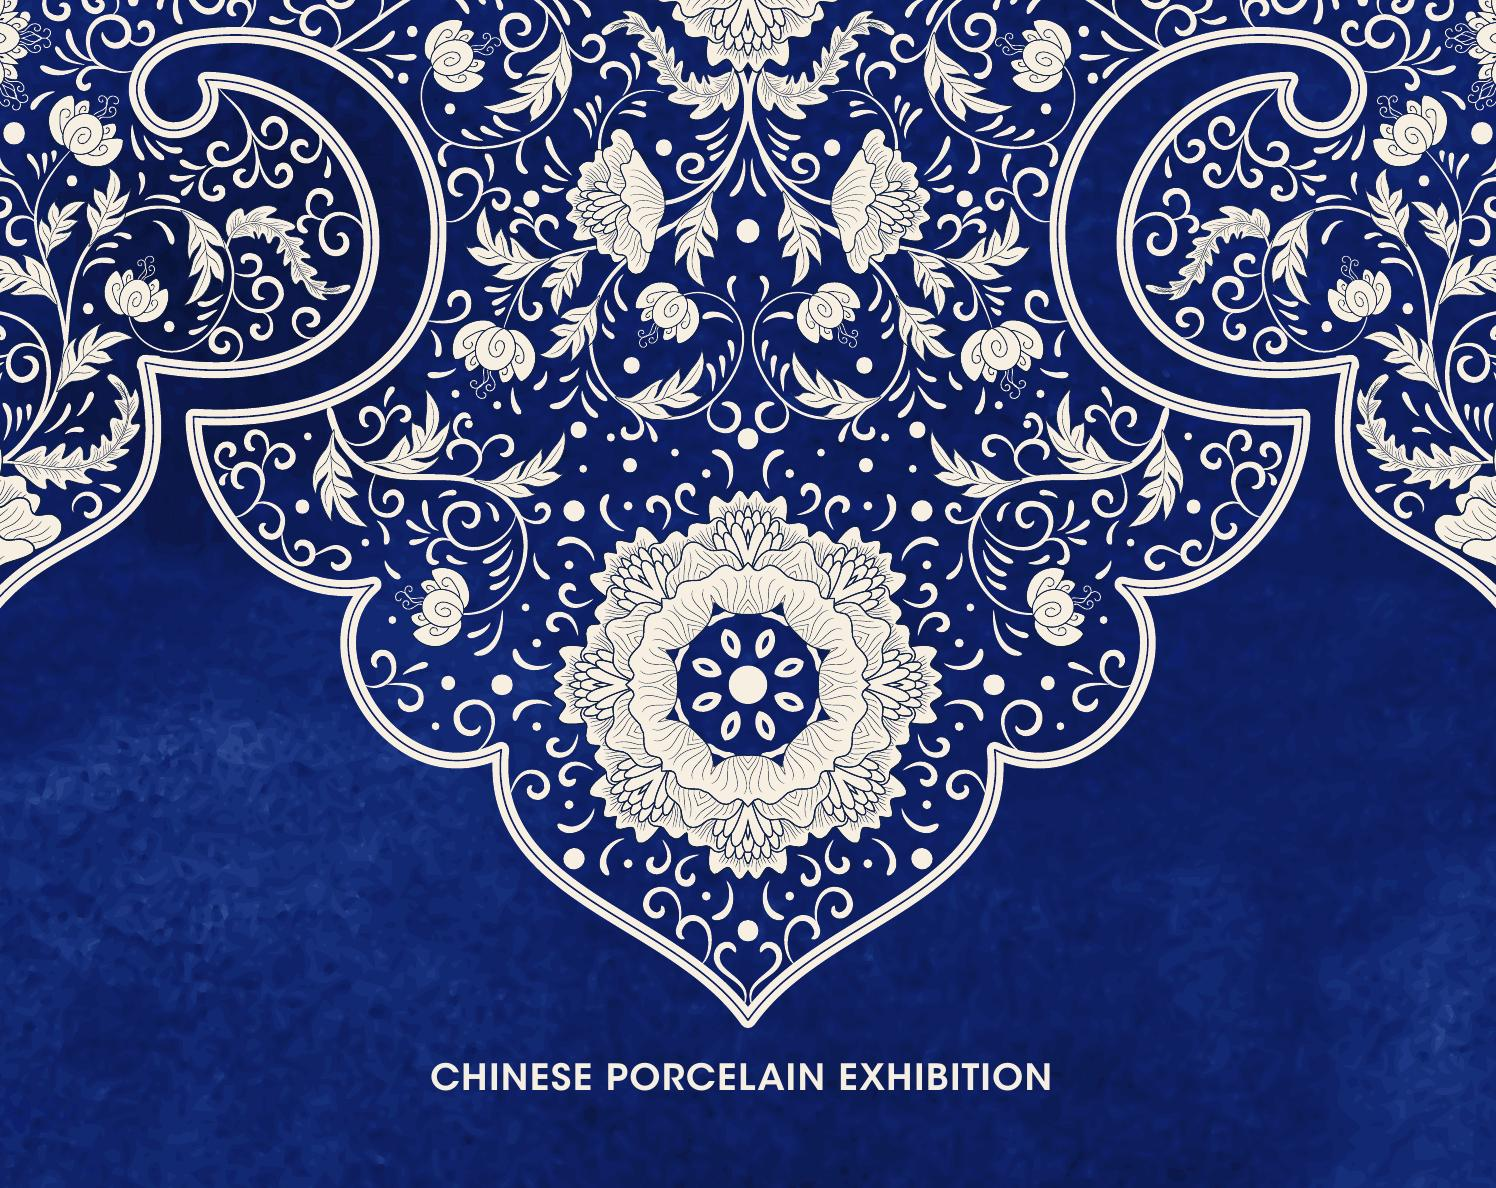 Dating chinese porcelain from facial features and adornments eklof